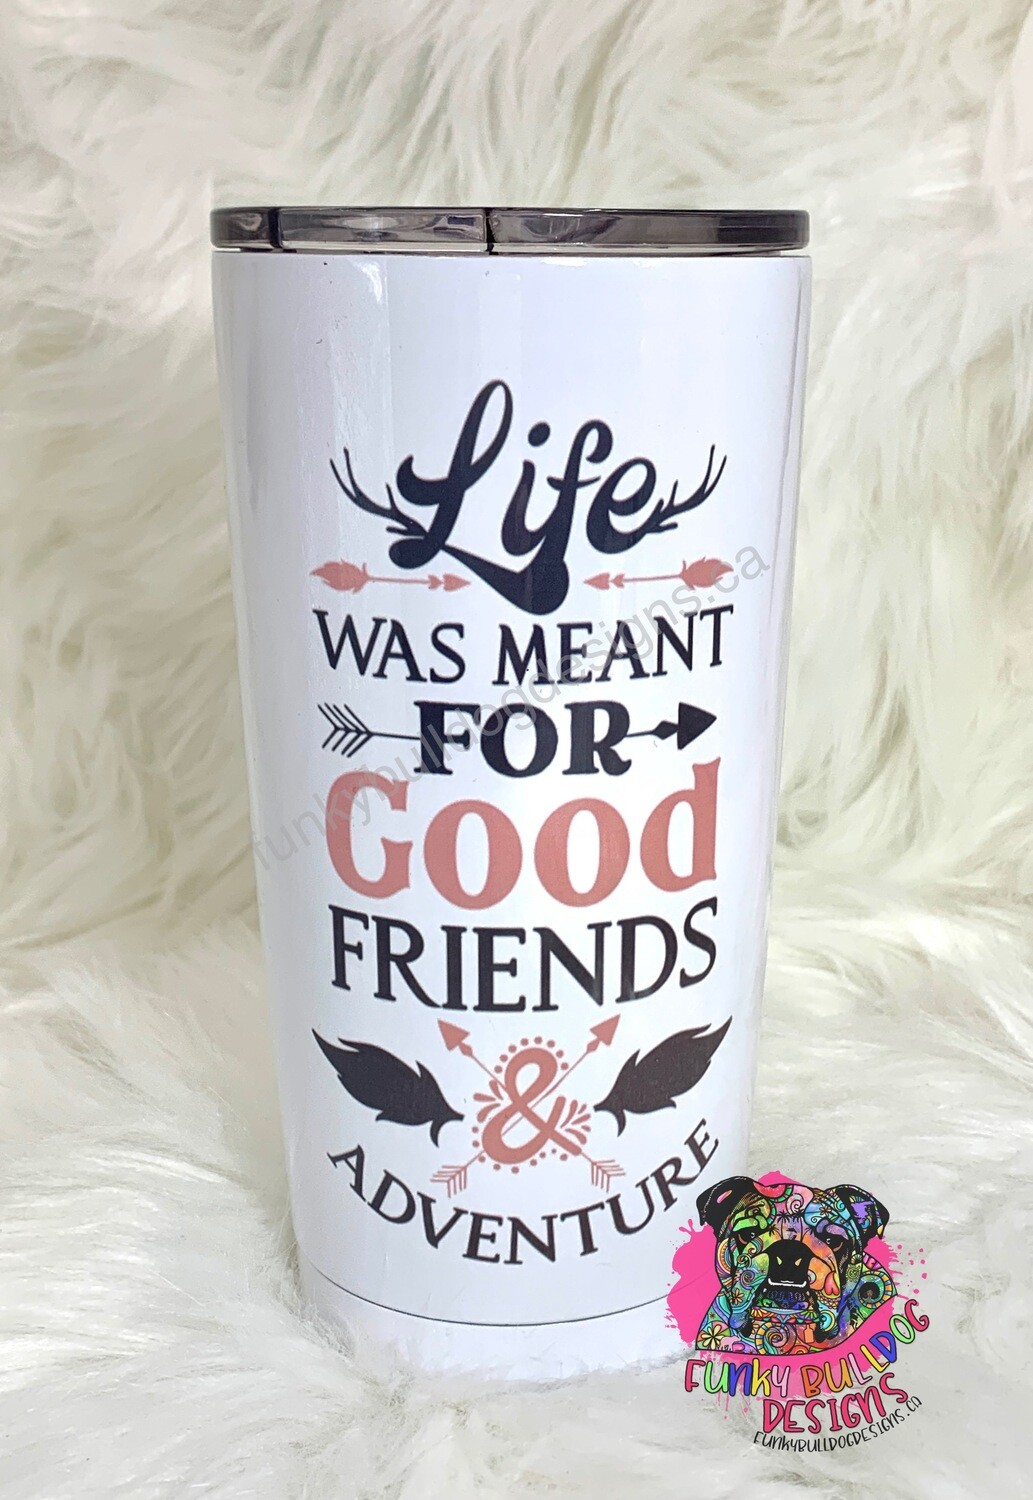 20oz Stainless Steel Tumbler - Life is meant for good friends